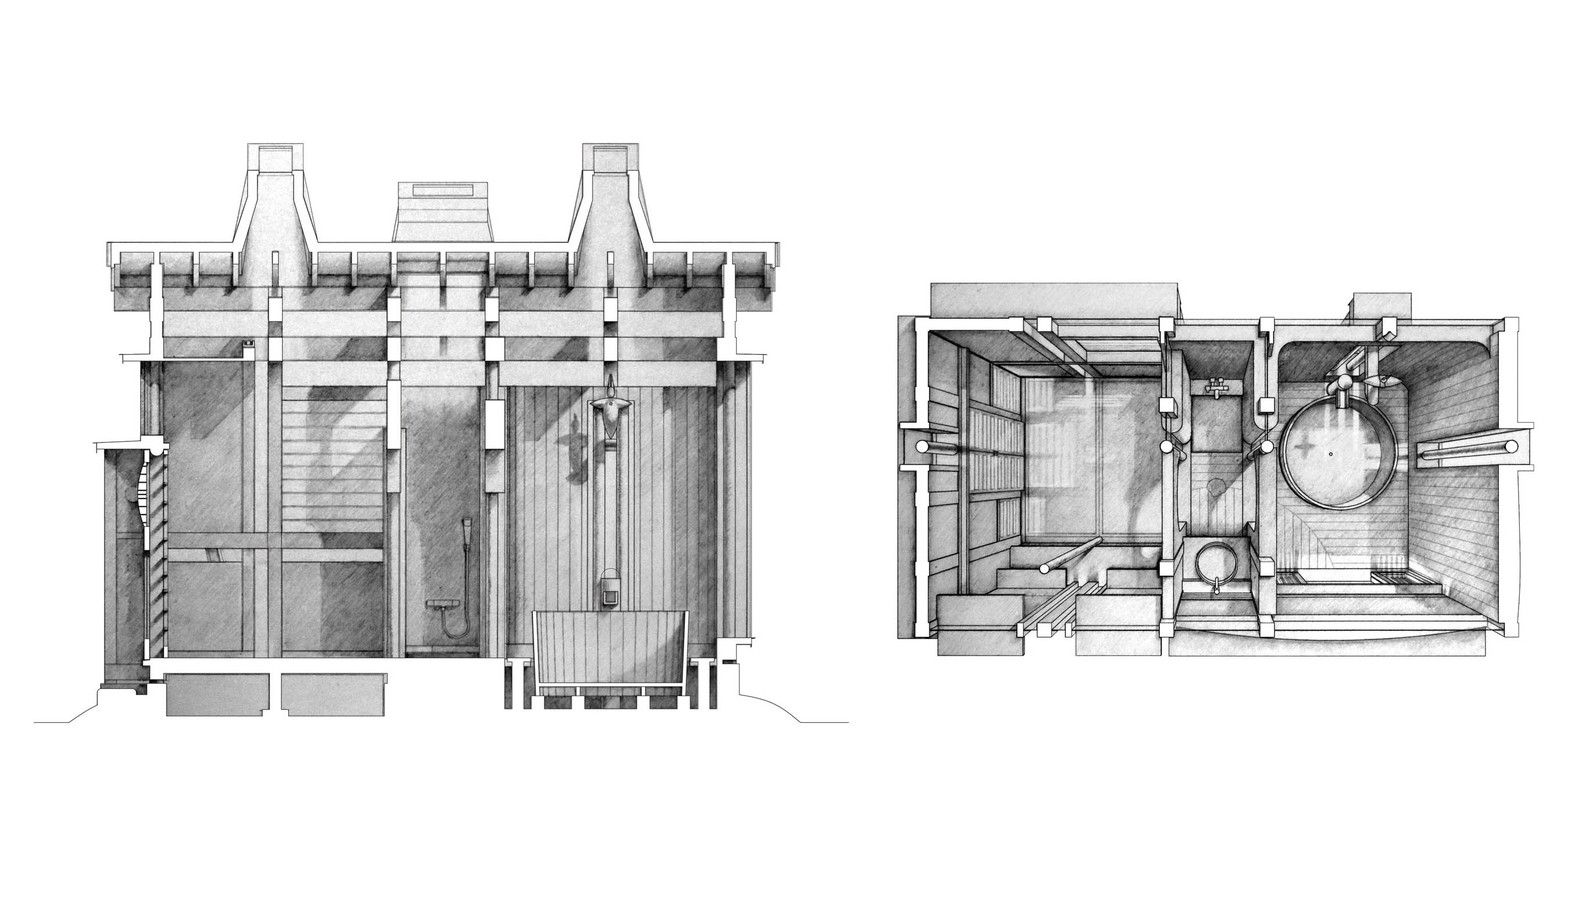 Gallery Of The Best Architecture Drawings 2015 11 Architectural And Diagram 2015courtesy Takasaki Architects